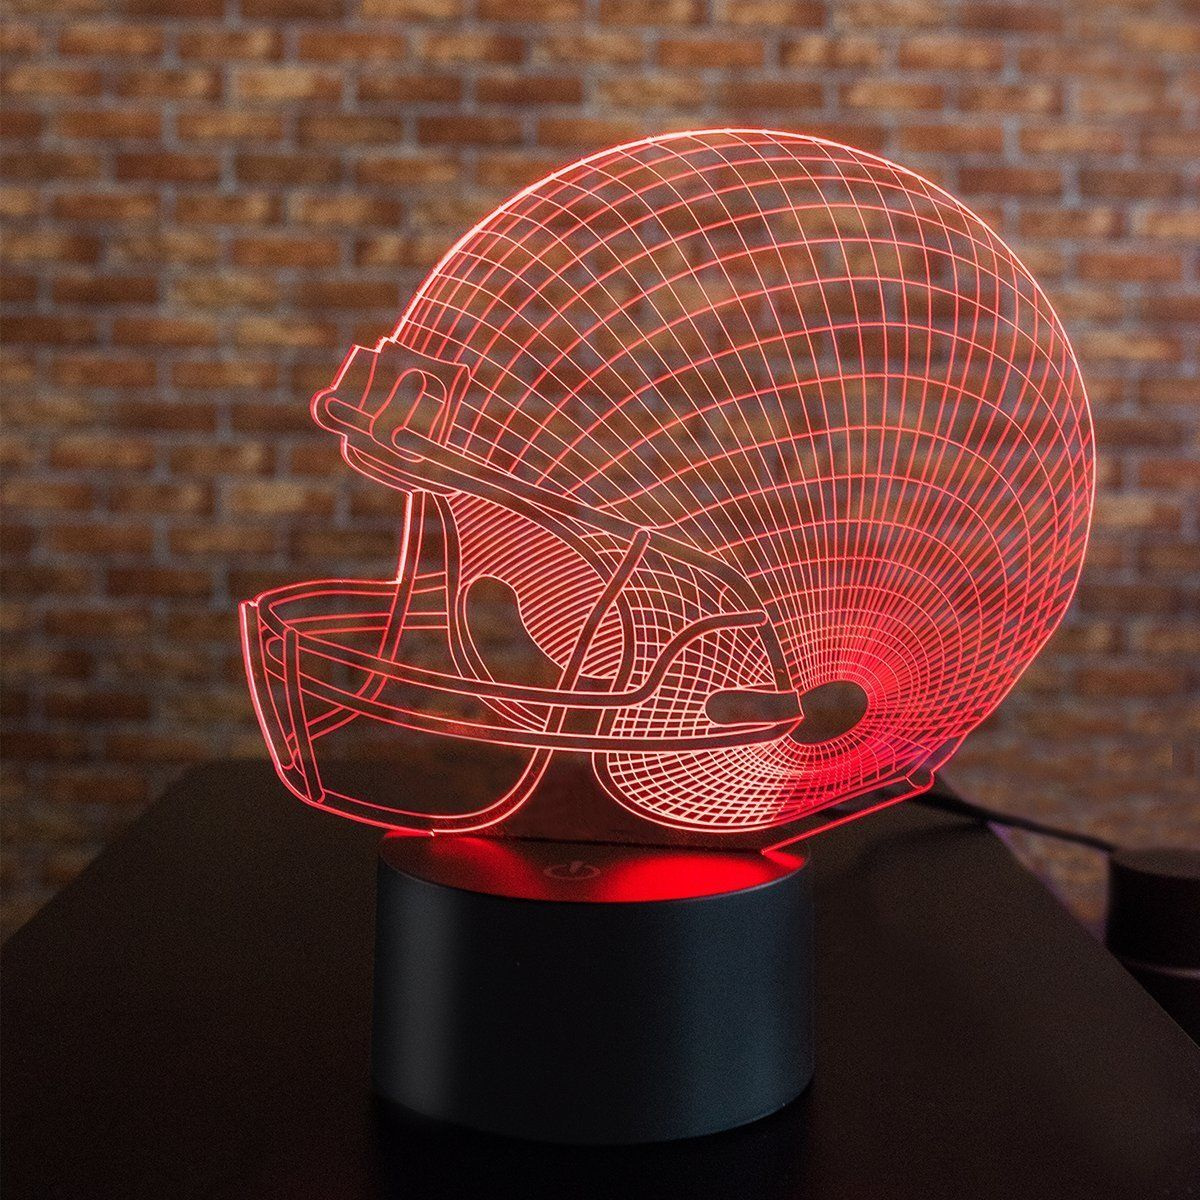 Illusion Led Night Light For Boys Men 3D Illusion Lamp Football Helmet 7 Colors Room